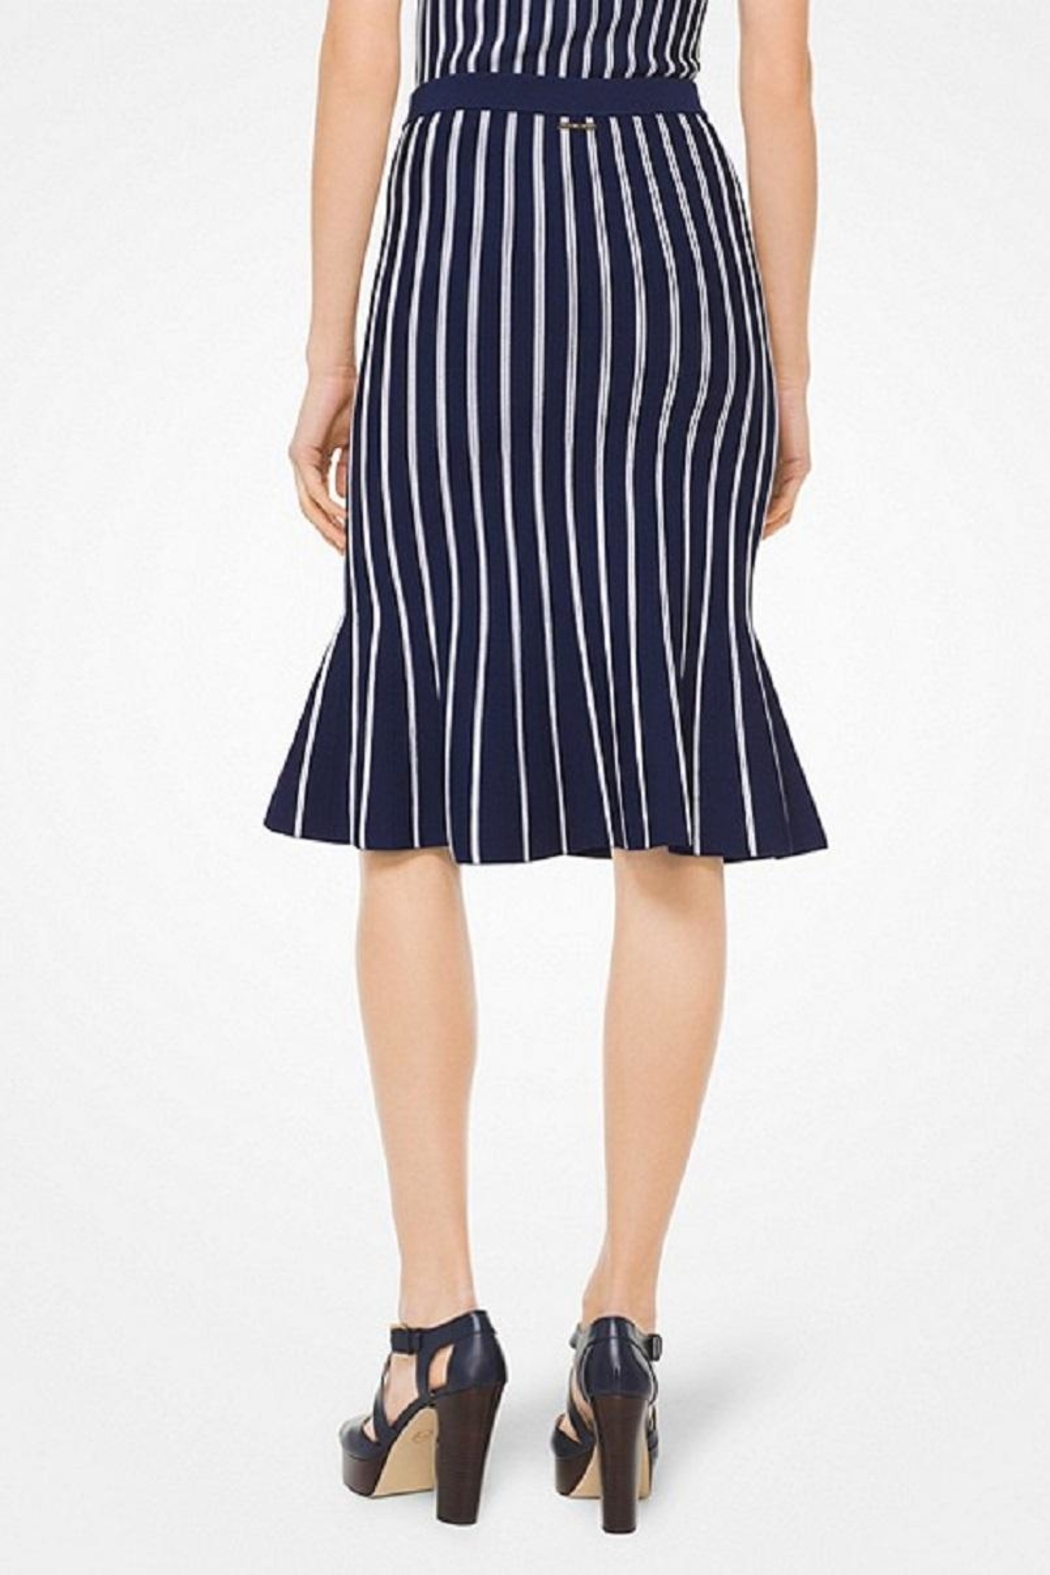 Michael Kors Striped-Stretch Trumpet Skirt - Front Full Image